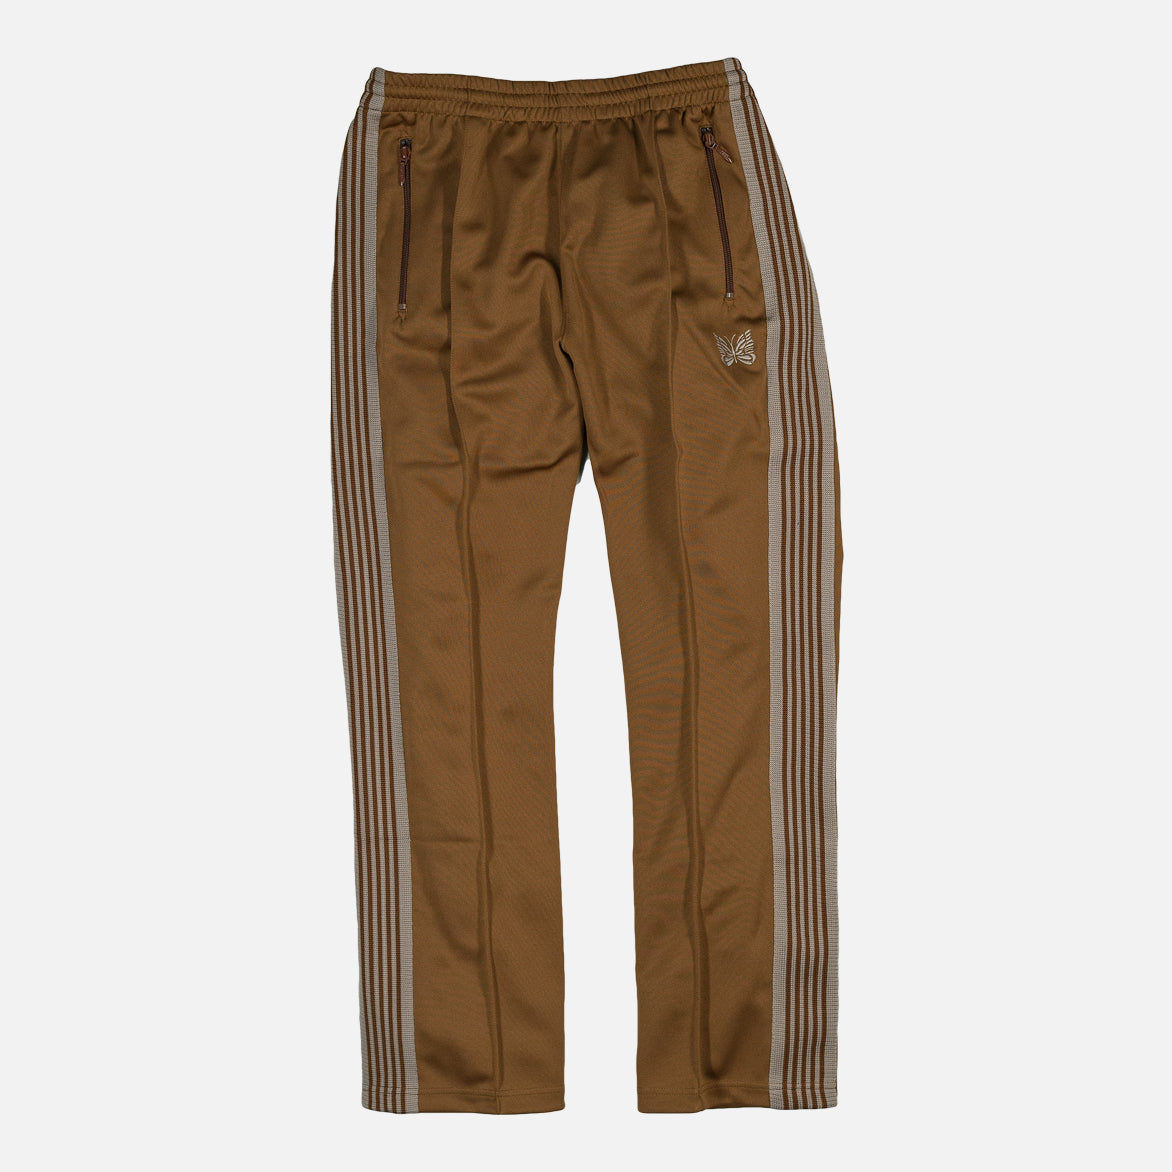 NARROW TRACK PANT - BROWN